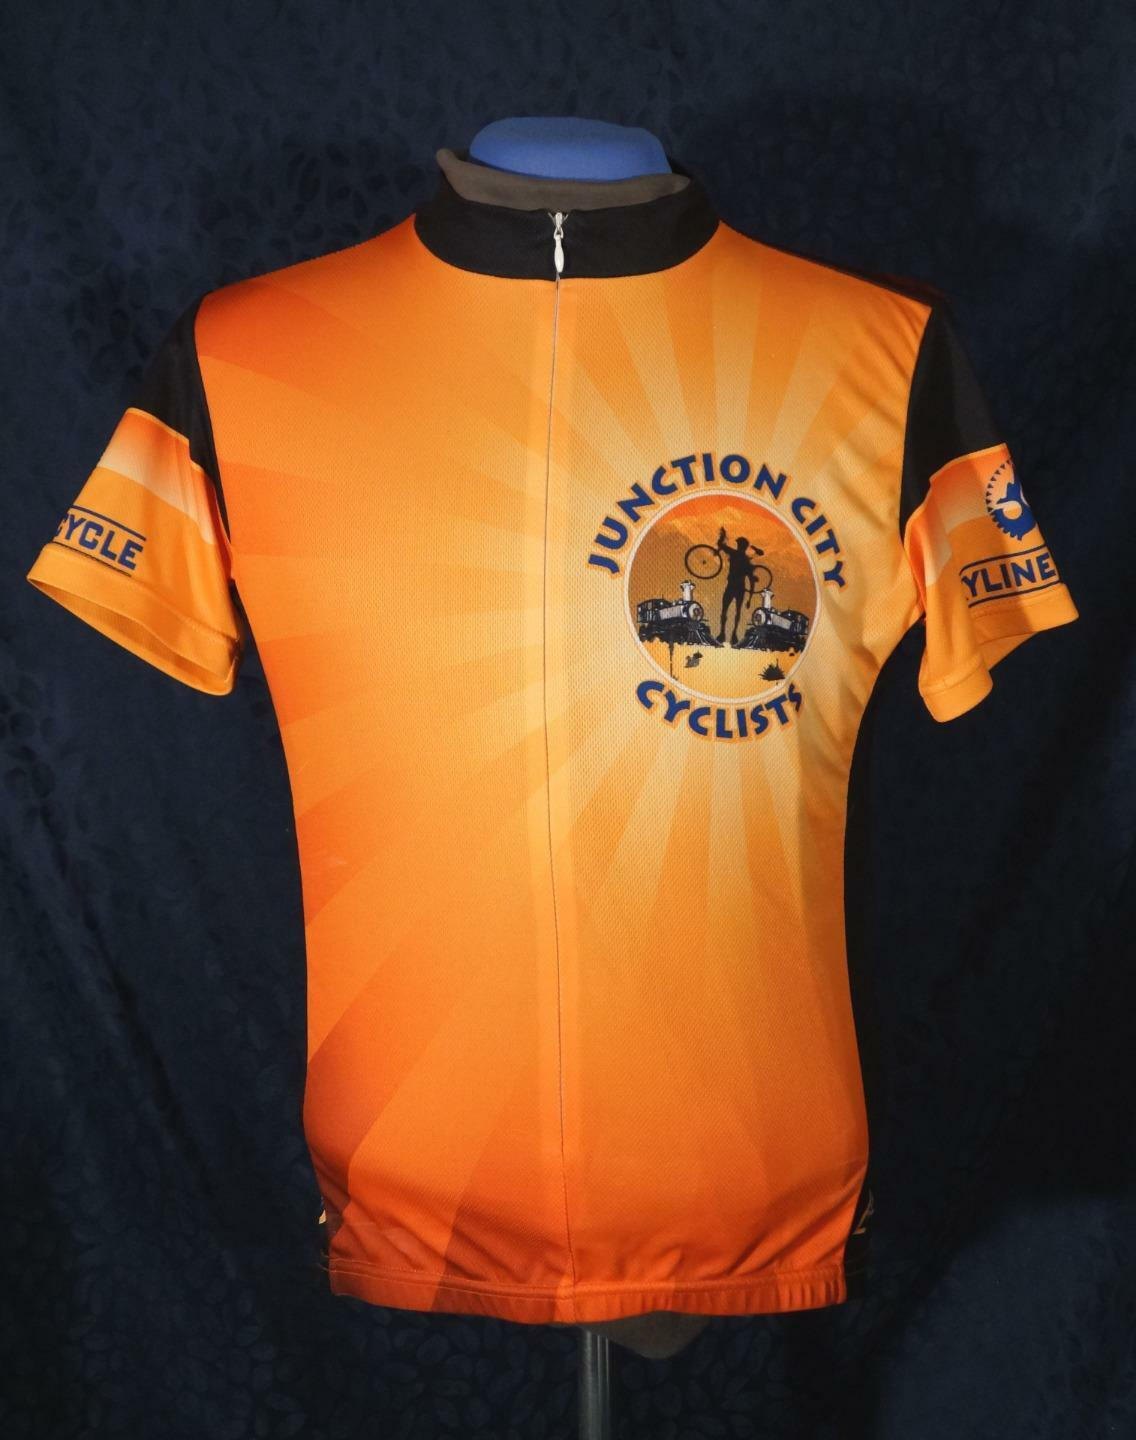 Handsome orange PRIMAL Junction City Cyclists Raglan Cycling Jersey Sz M